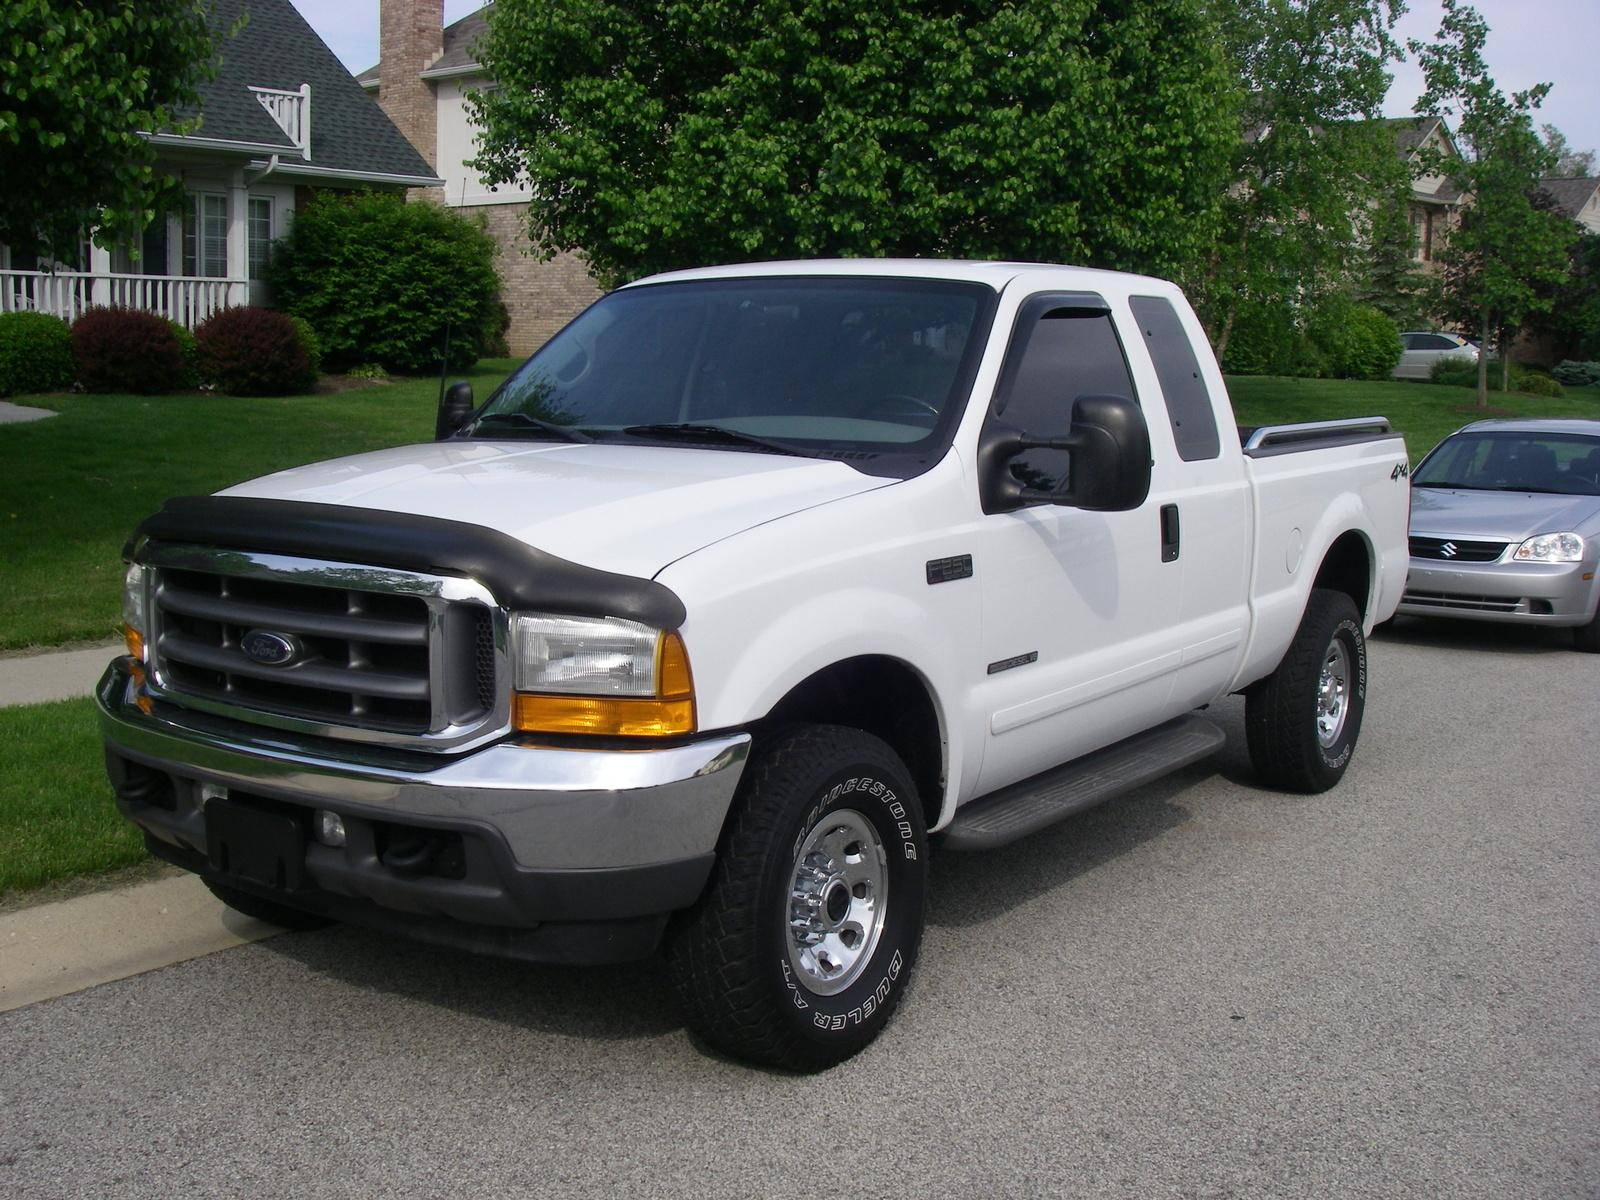 2006 ford f 250 super duty information and photos zombiedrive. Black Bedroom Furniture Sets. Home Design Ideas